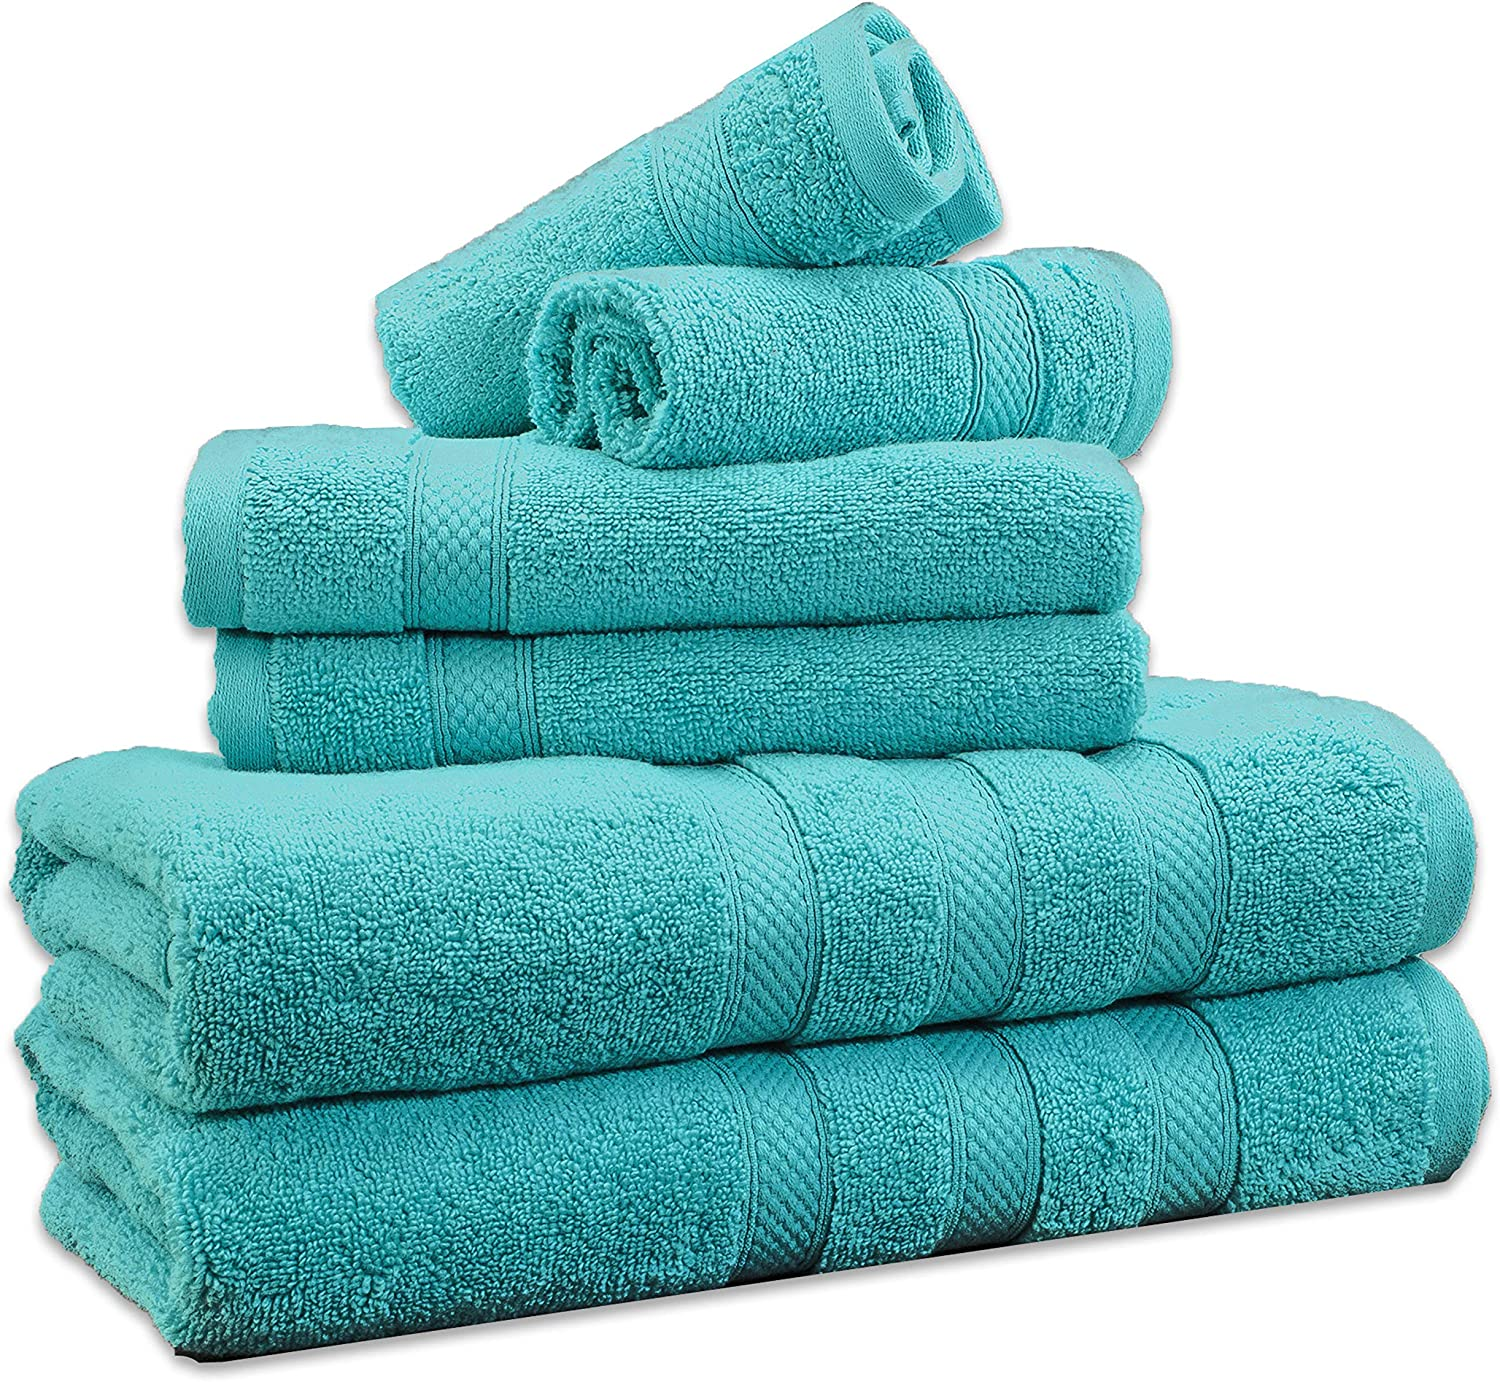 Weavely 6 Max 68% Super sale OFF Piece Cotton 600 GSM Bath Spa Towel Q and Set Hotel